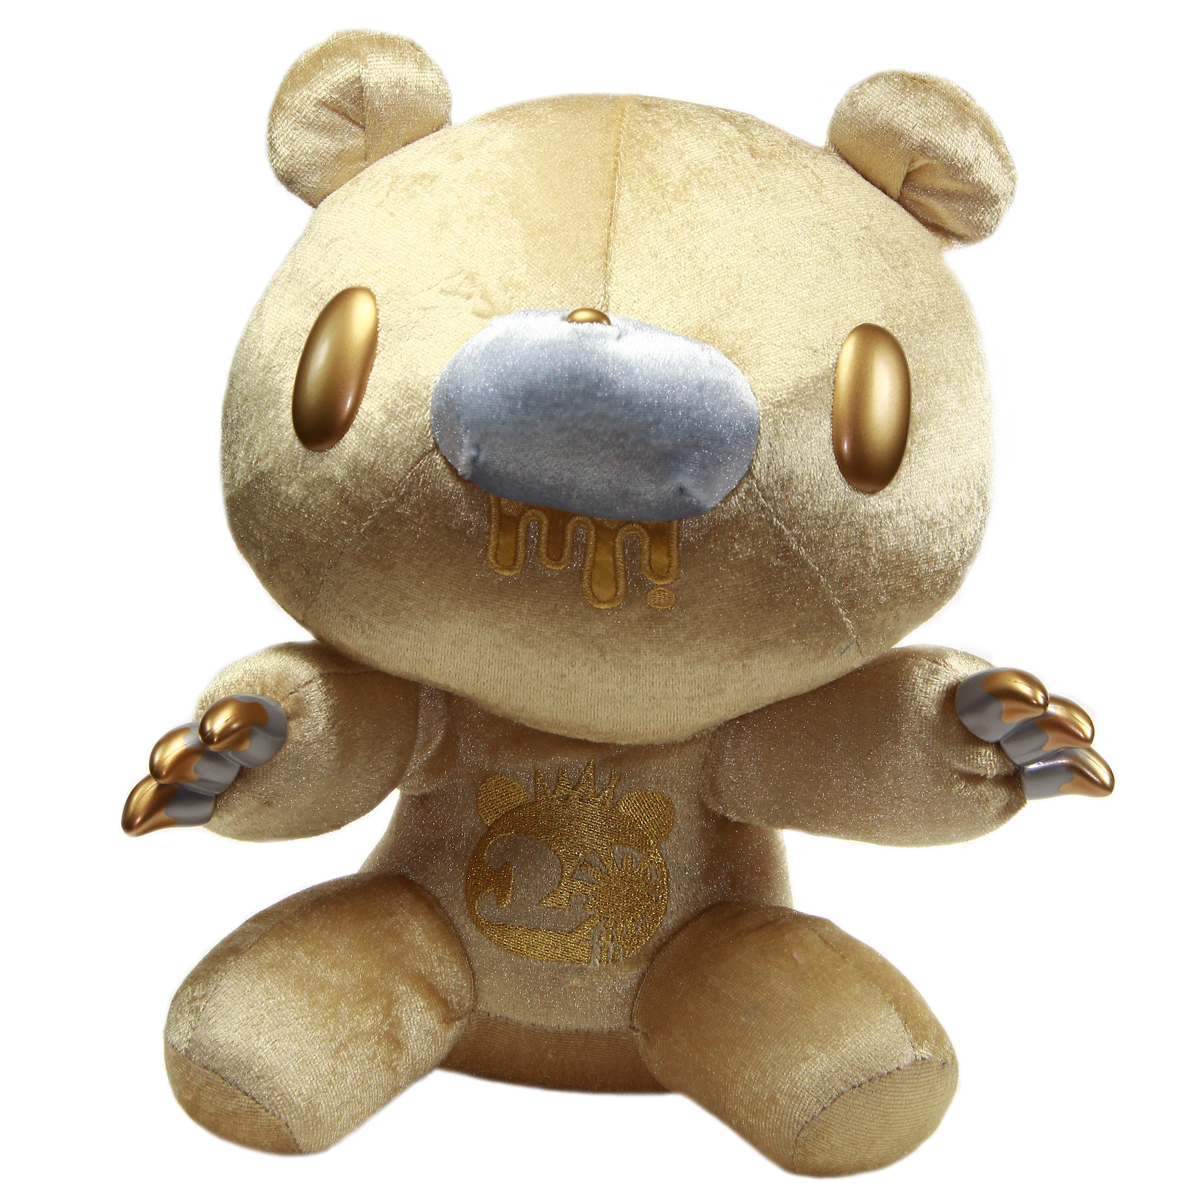 Gloomy Bear Plush Doll 20th Anniversary Gold GP #551 12 Inches Taito